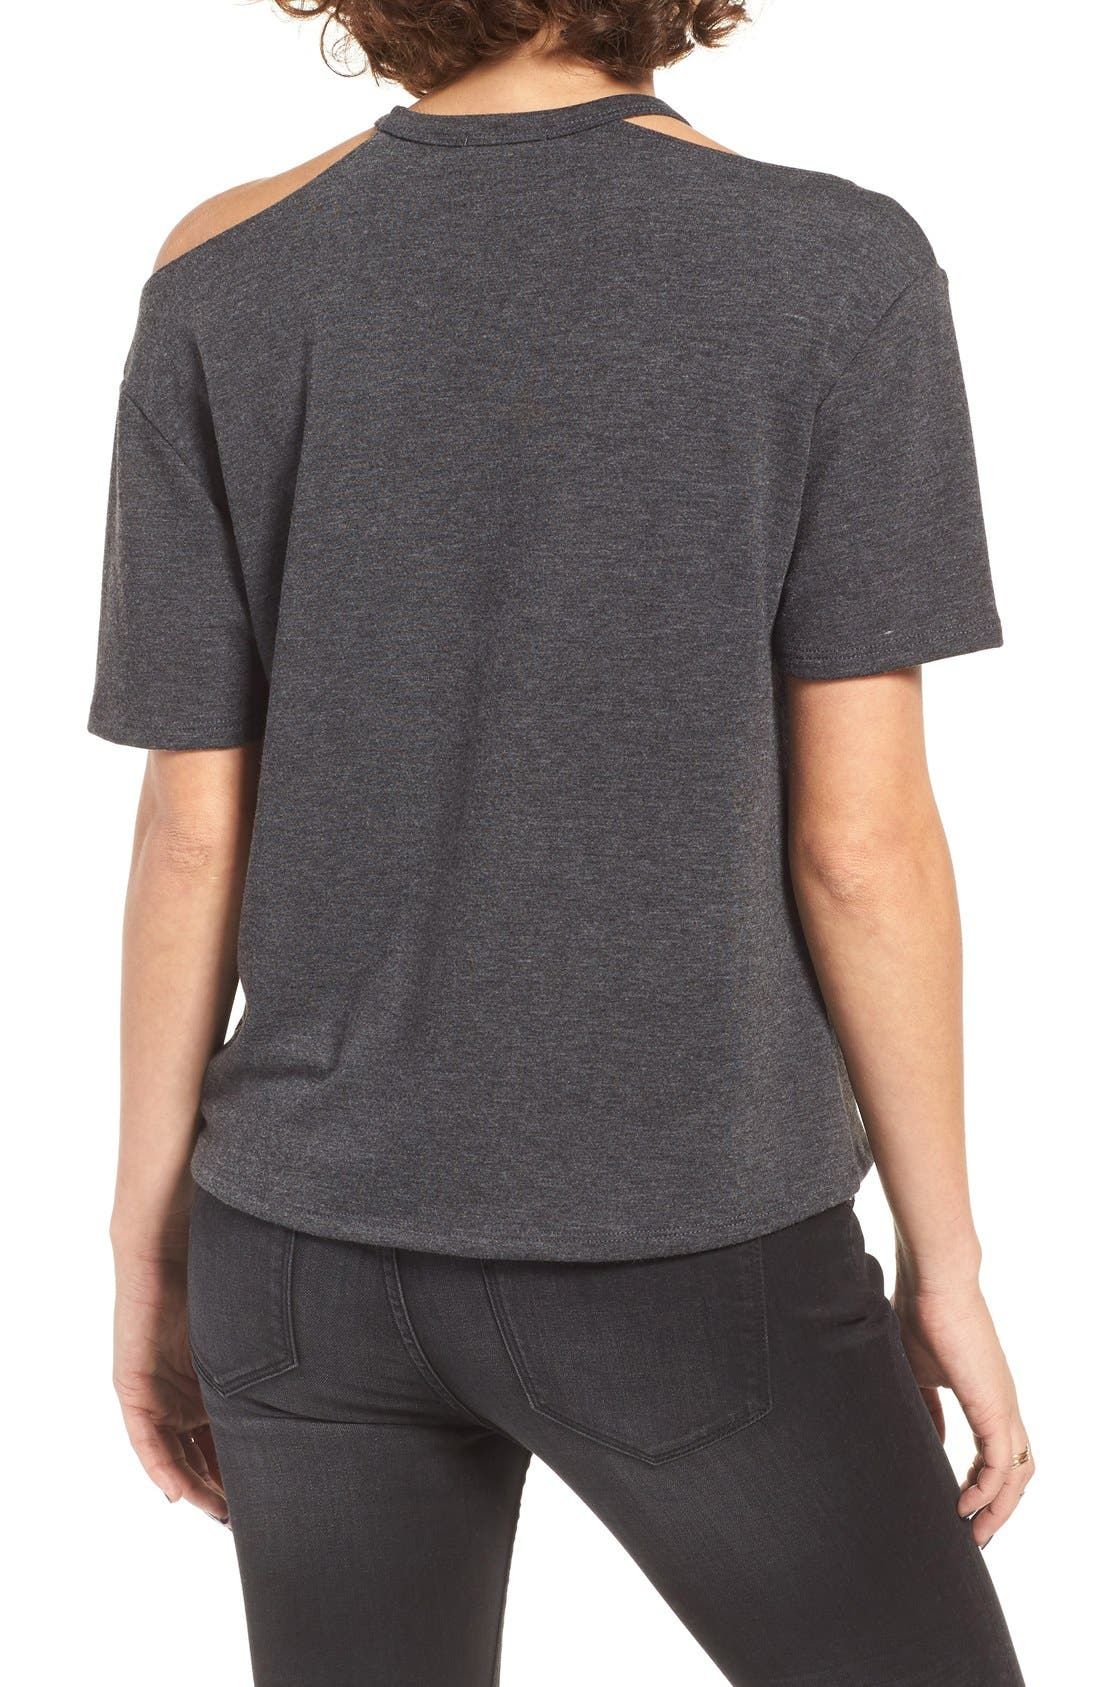 Alternate Image 2  - Michelle by Comune Fairfield Cold Shoulder Tee